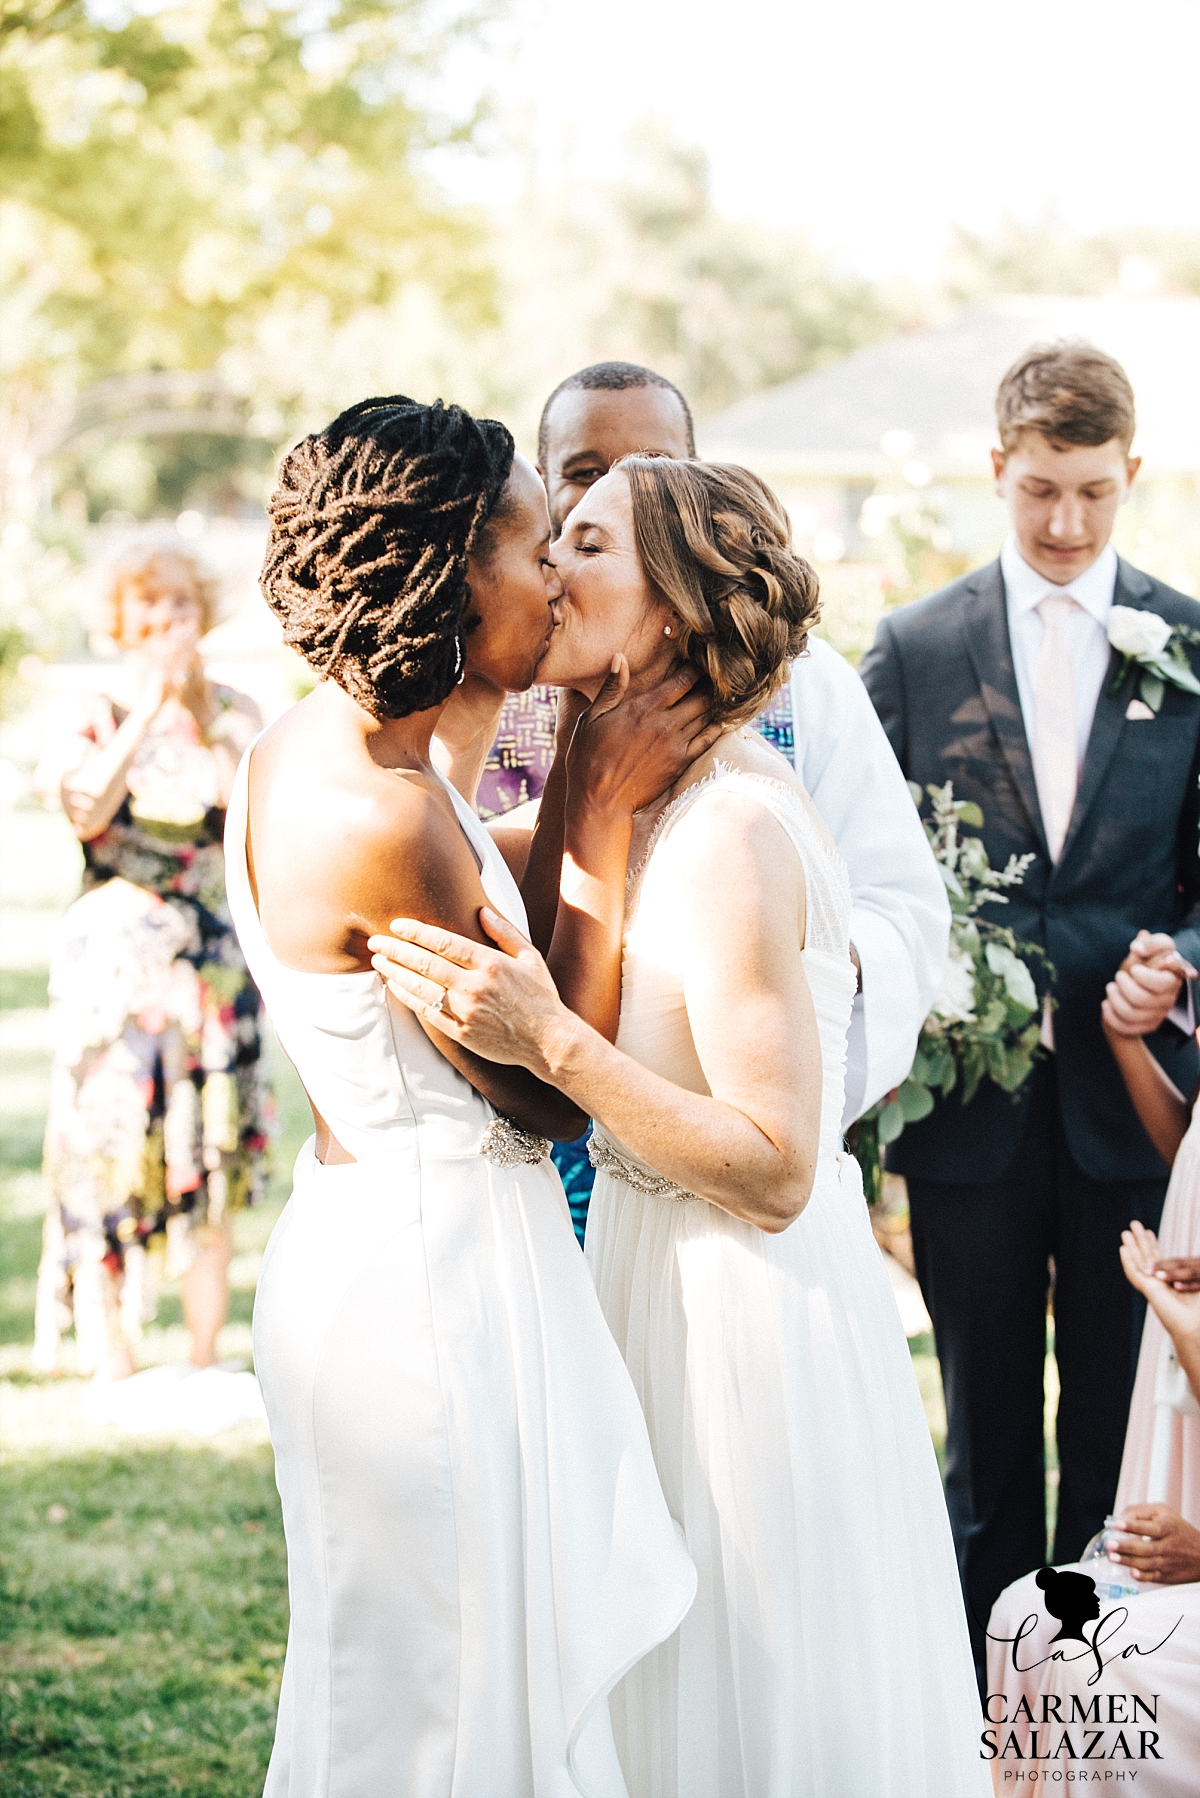 Brides' first kiss at McKinley Rose Garden - Carmen Salazar